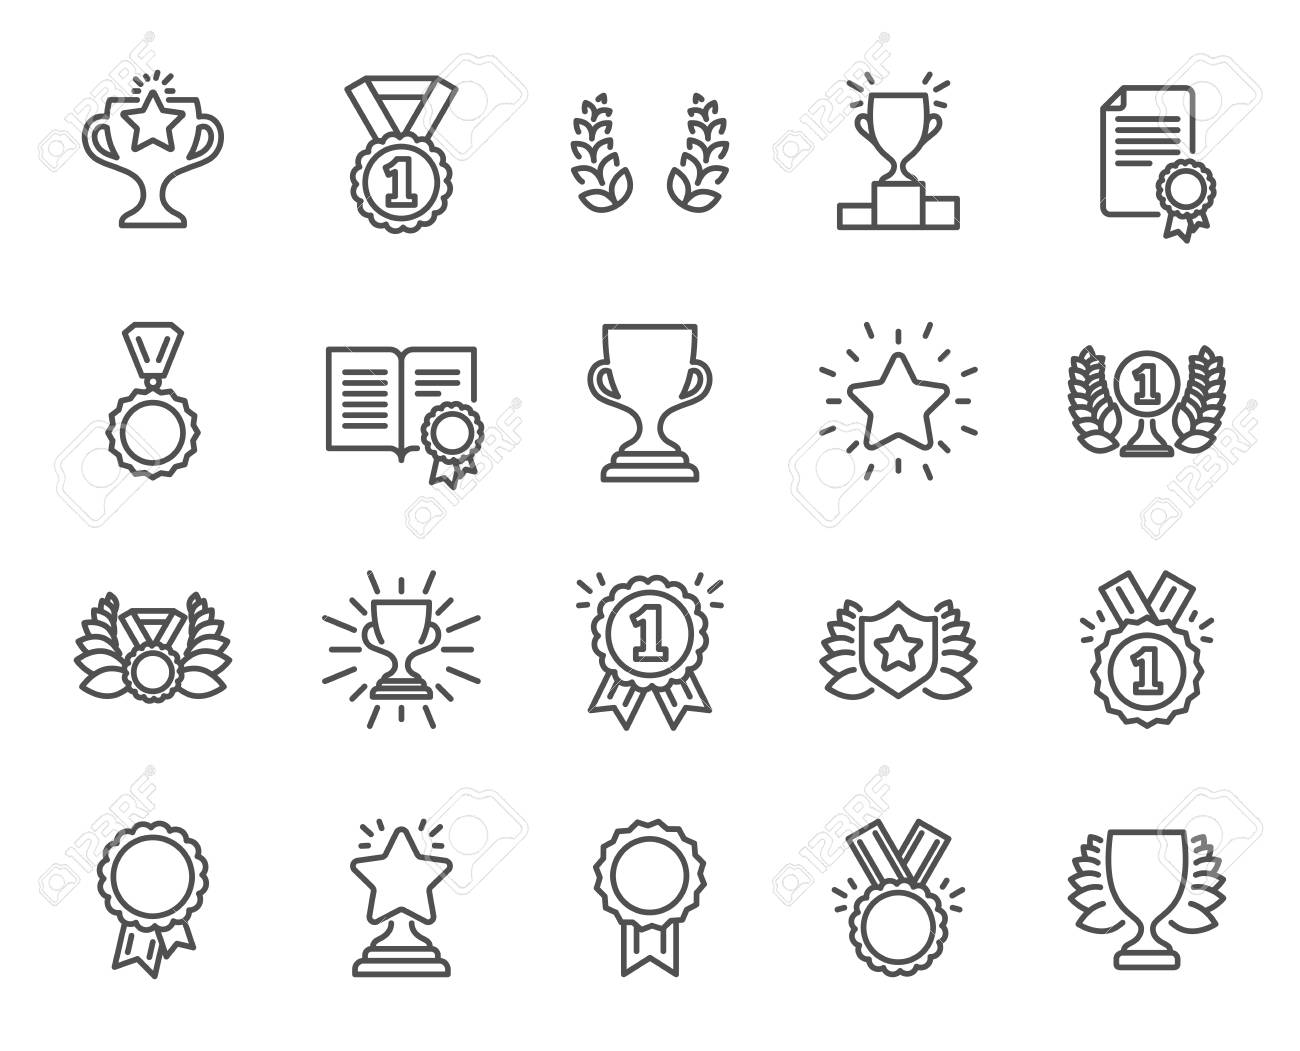 Awards line icons. Set of Winner medal, Victory cup and Laurel wreath signs. Reward, Certificate and Diploma message symbols. Glory shield, Prize and Rank star. Quality design elements. - 93836927